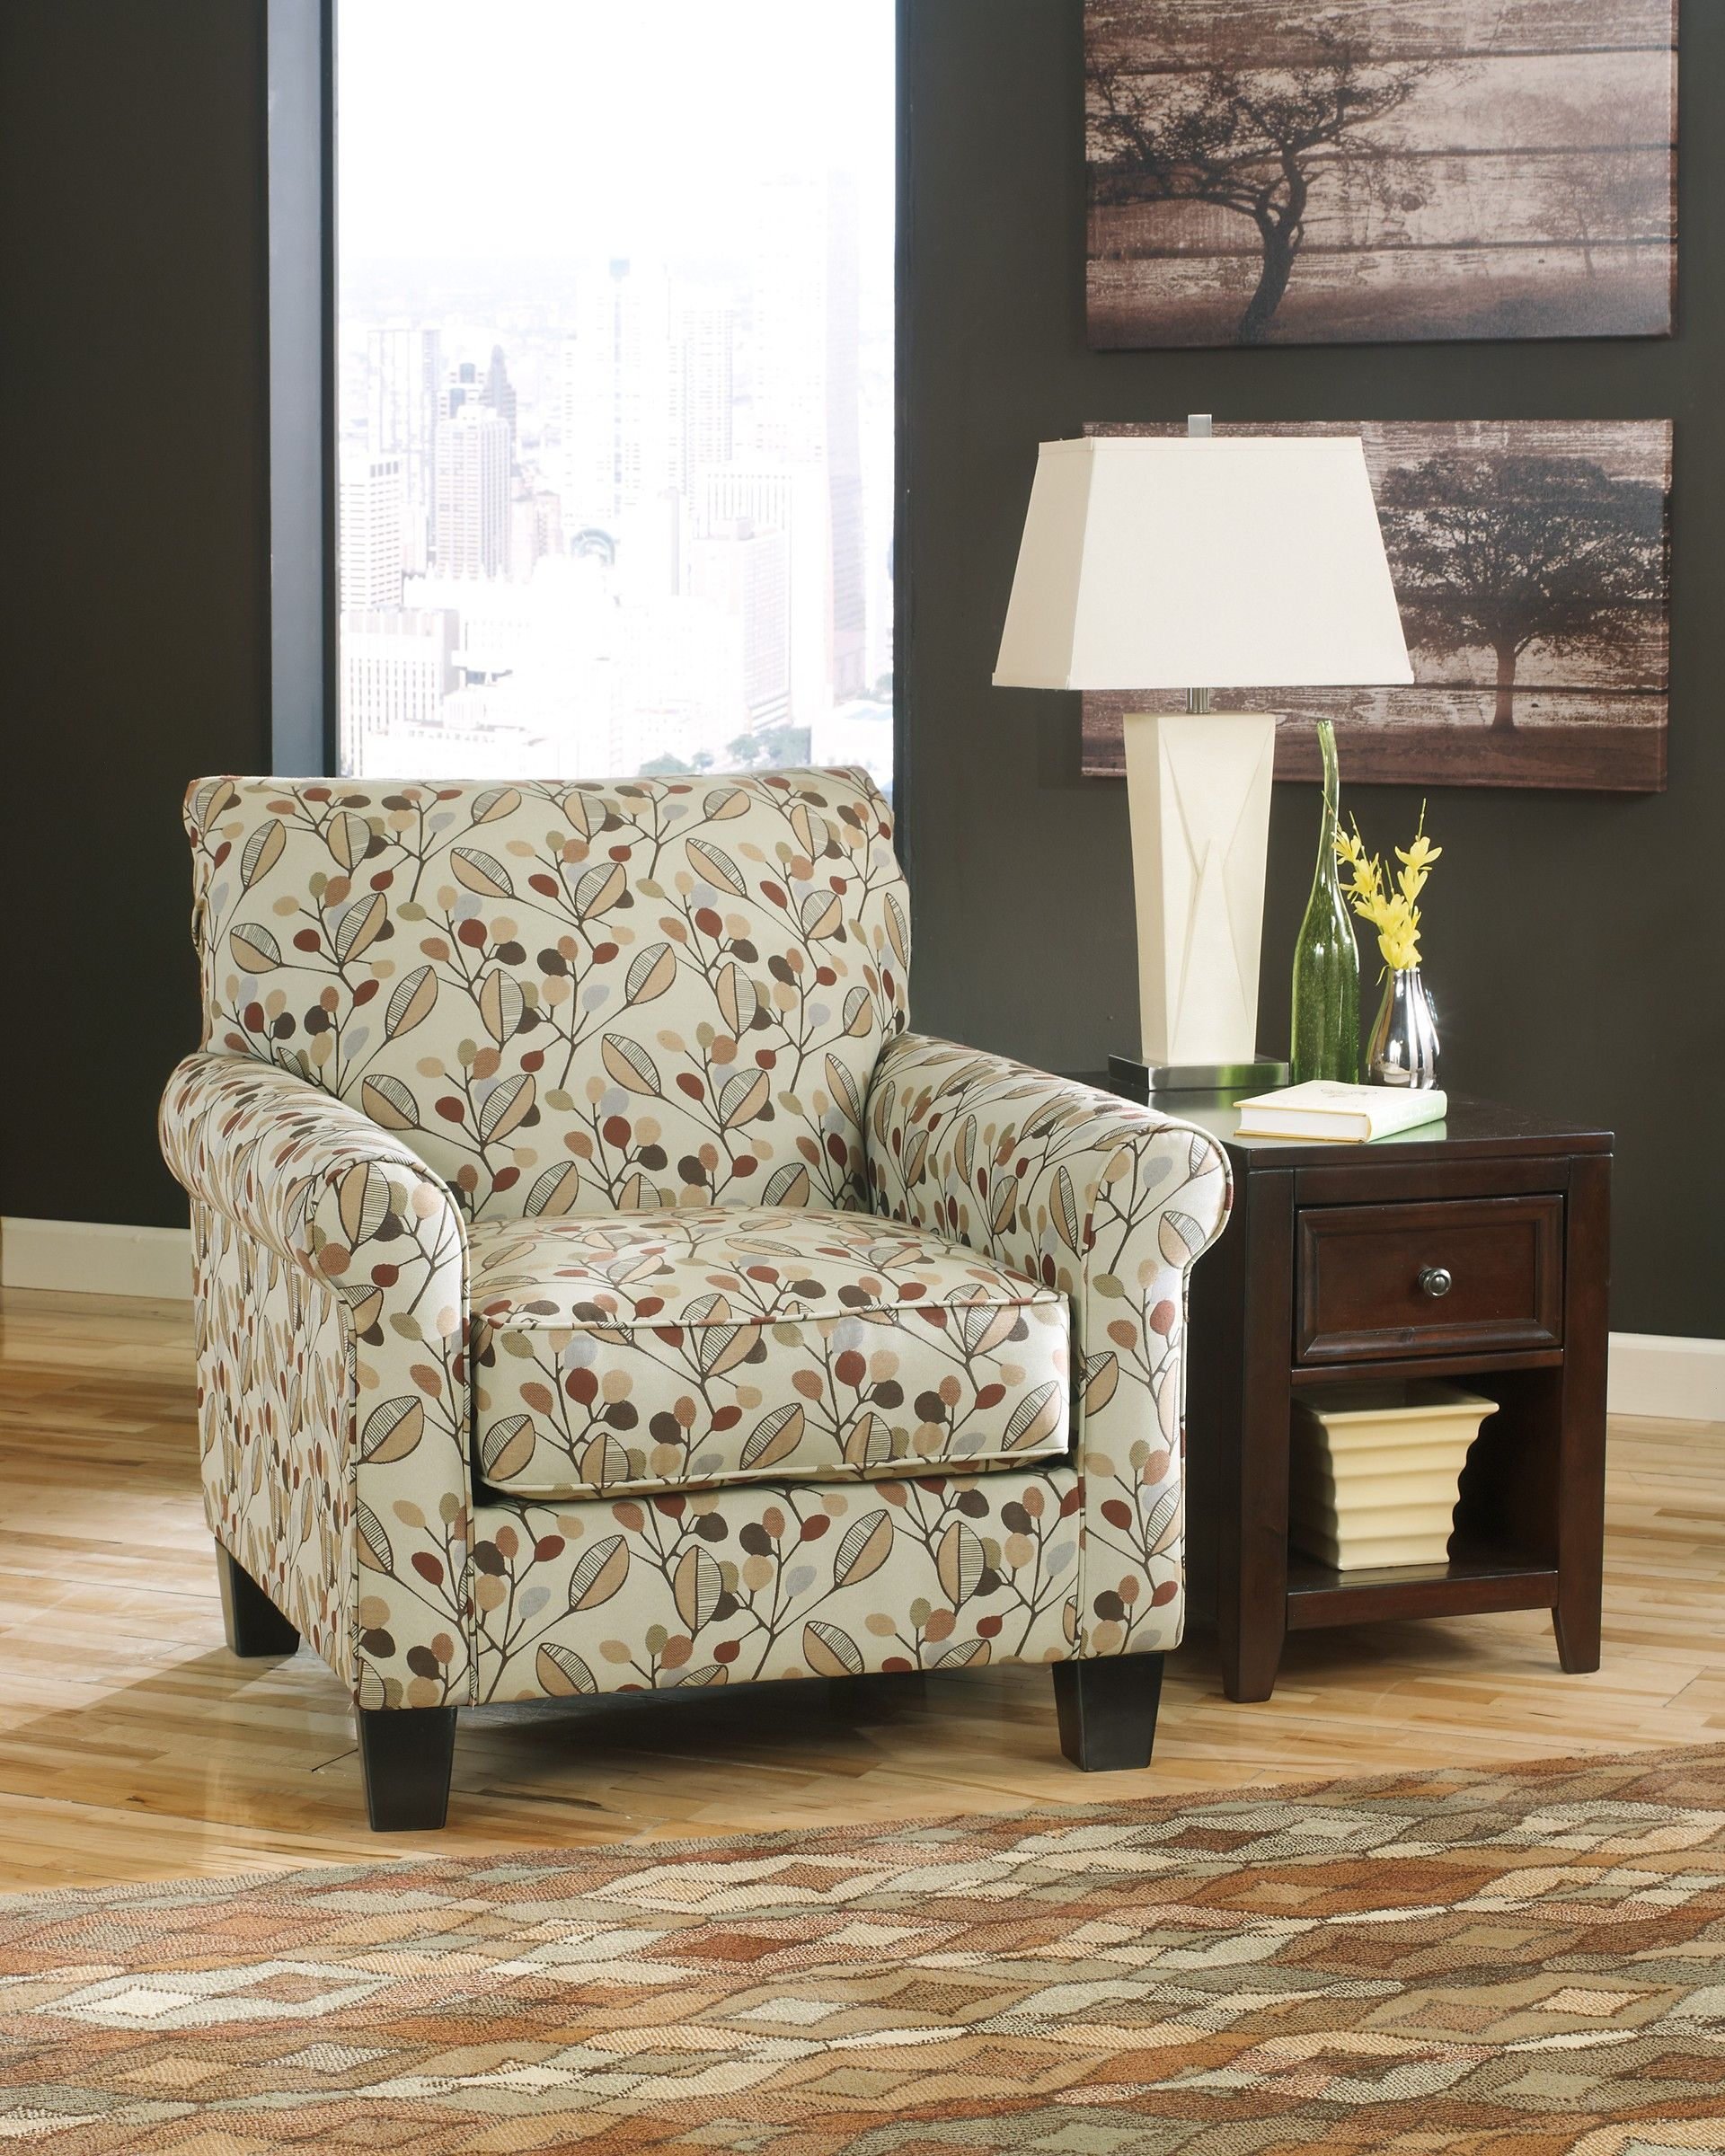 Danely Dusk Living Room Set From Ashley 35500: Ashley Danely 3550021 Benchcraft Accent Chair